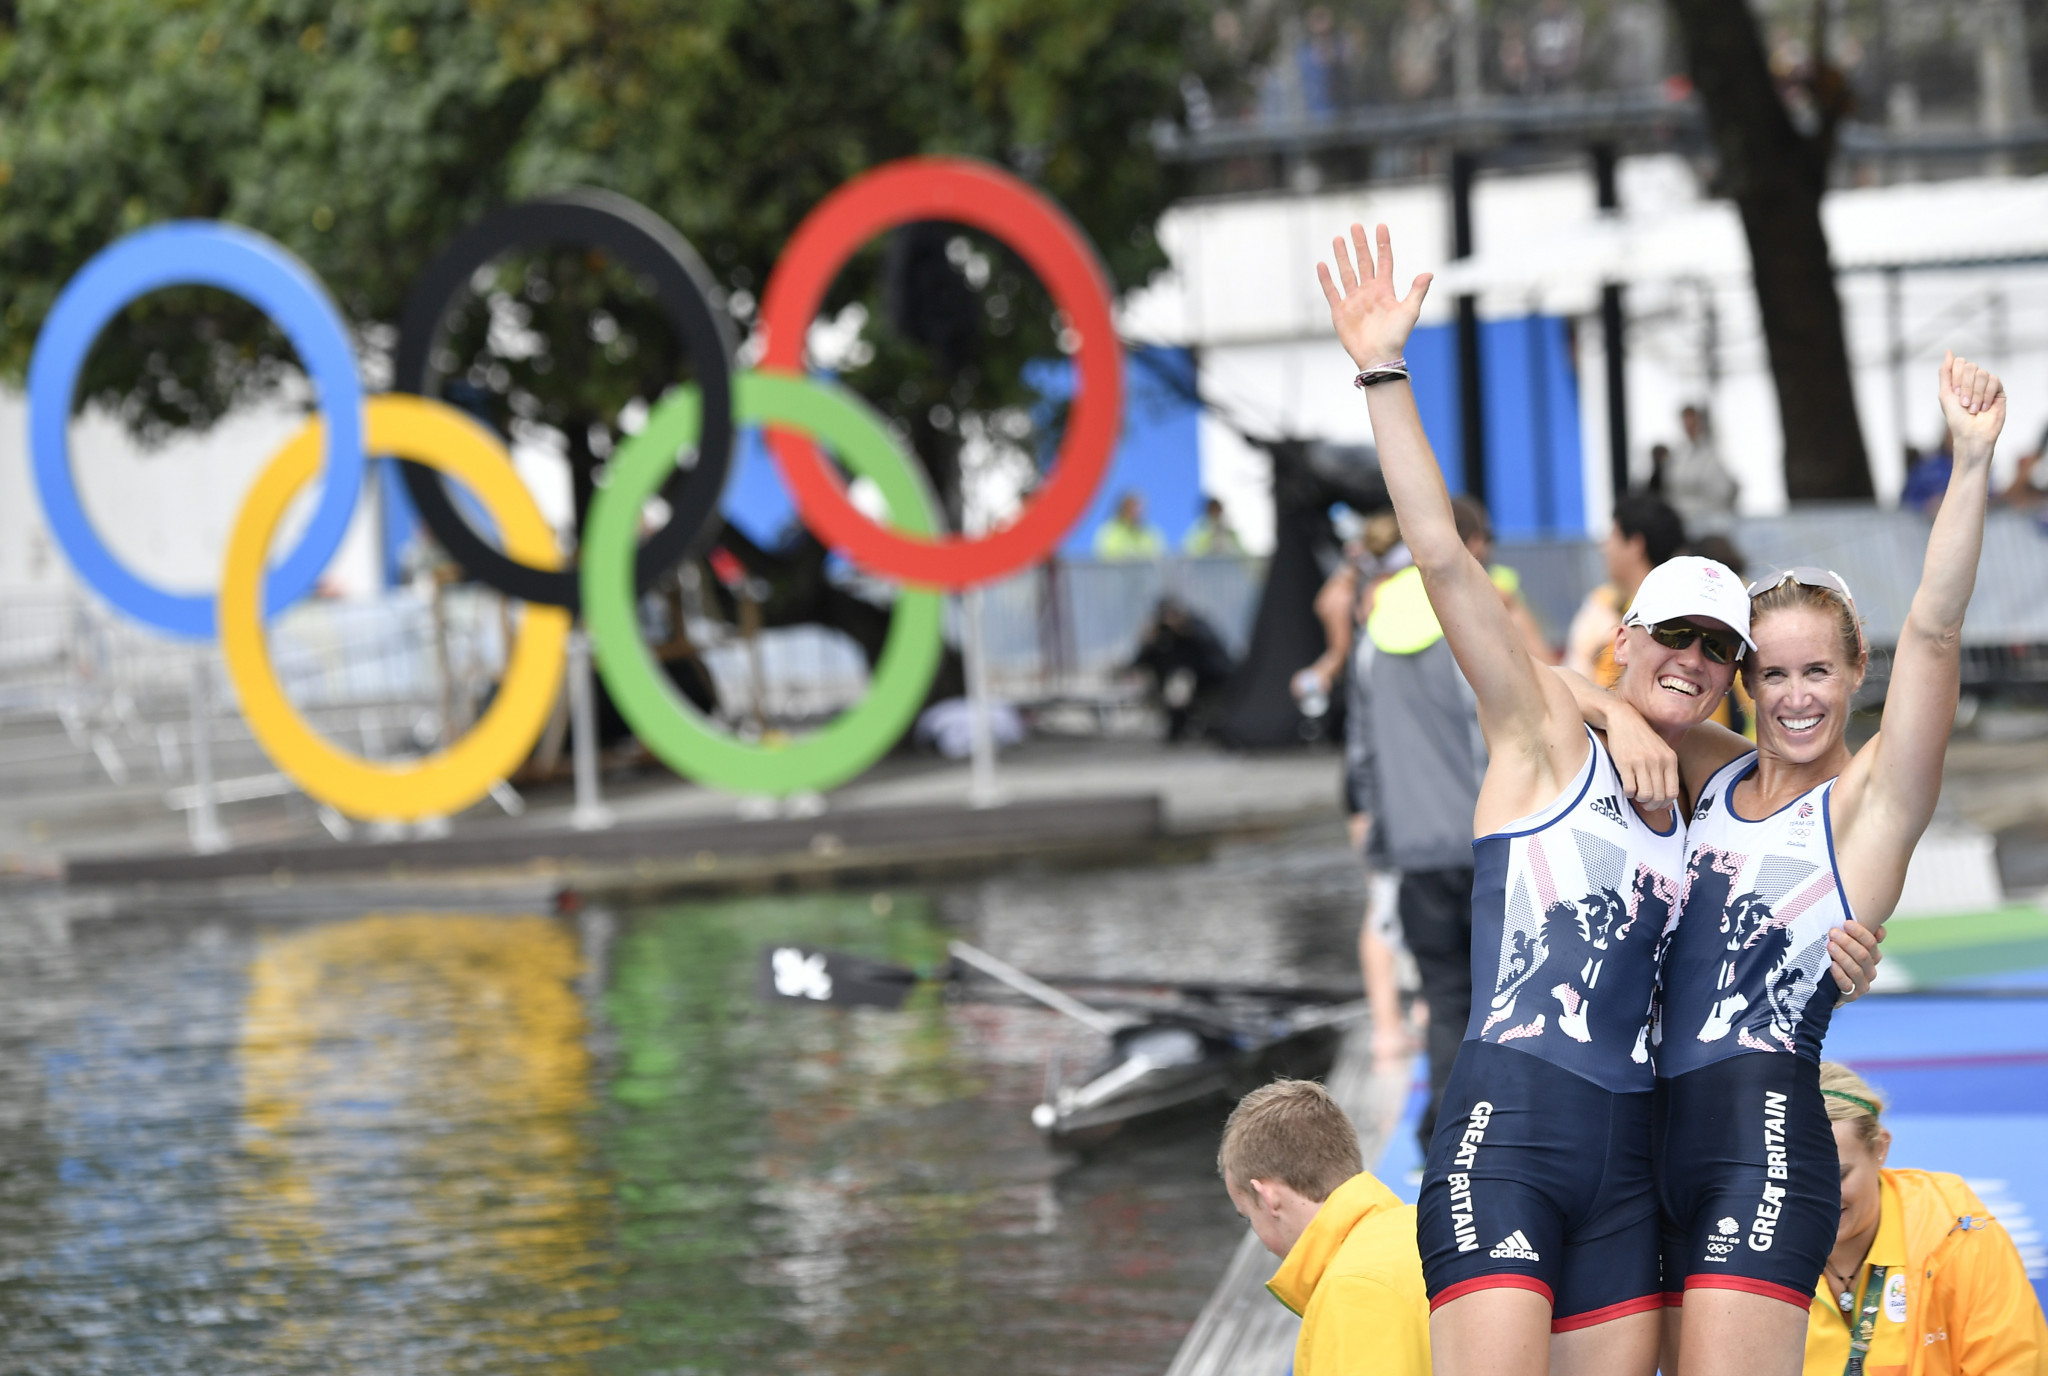 Helen Glover earned two Olympic golds in the women's coxless pairs with Heather Stanning ©Getty Images